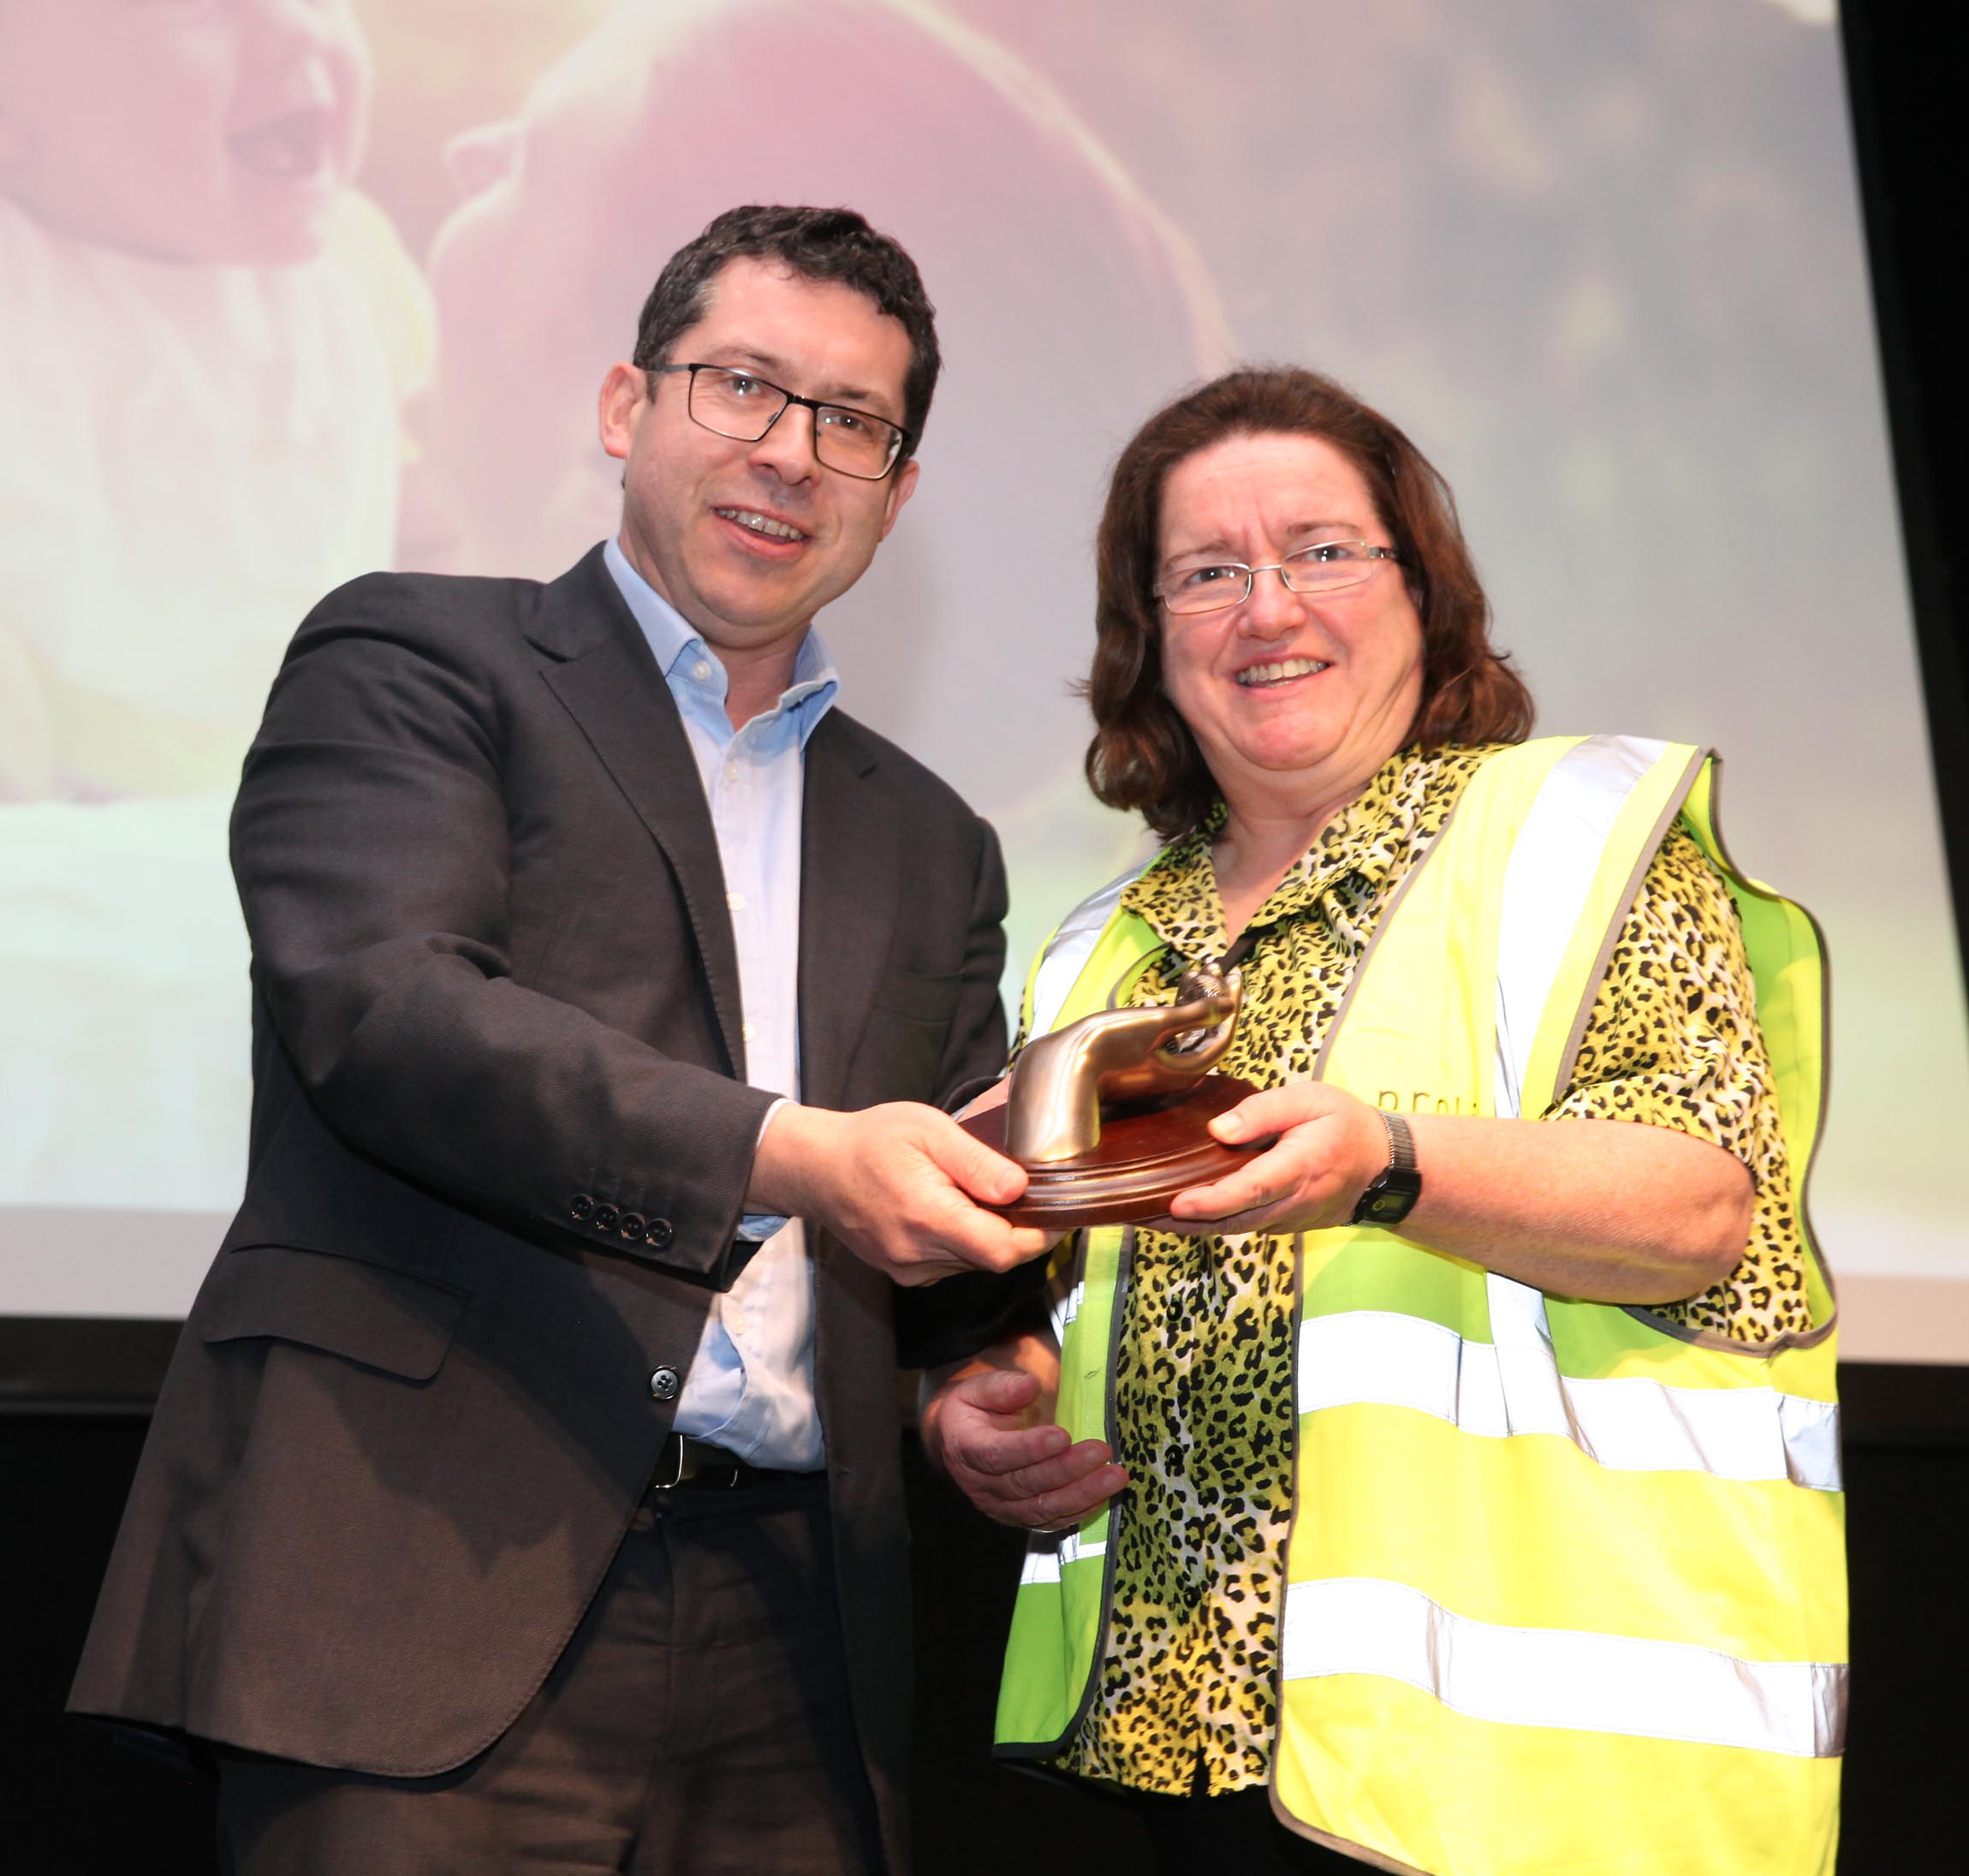 2.11.2019: Athlone woman receives 'Pro-Life Volunteer of the Year' award at Dublin conference